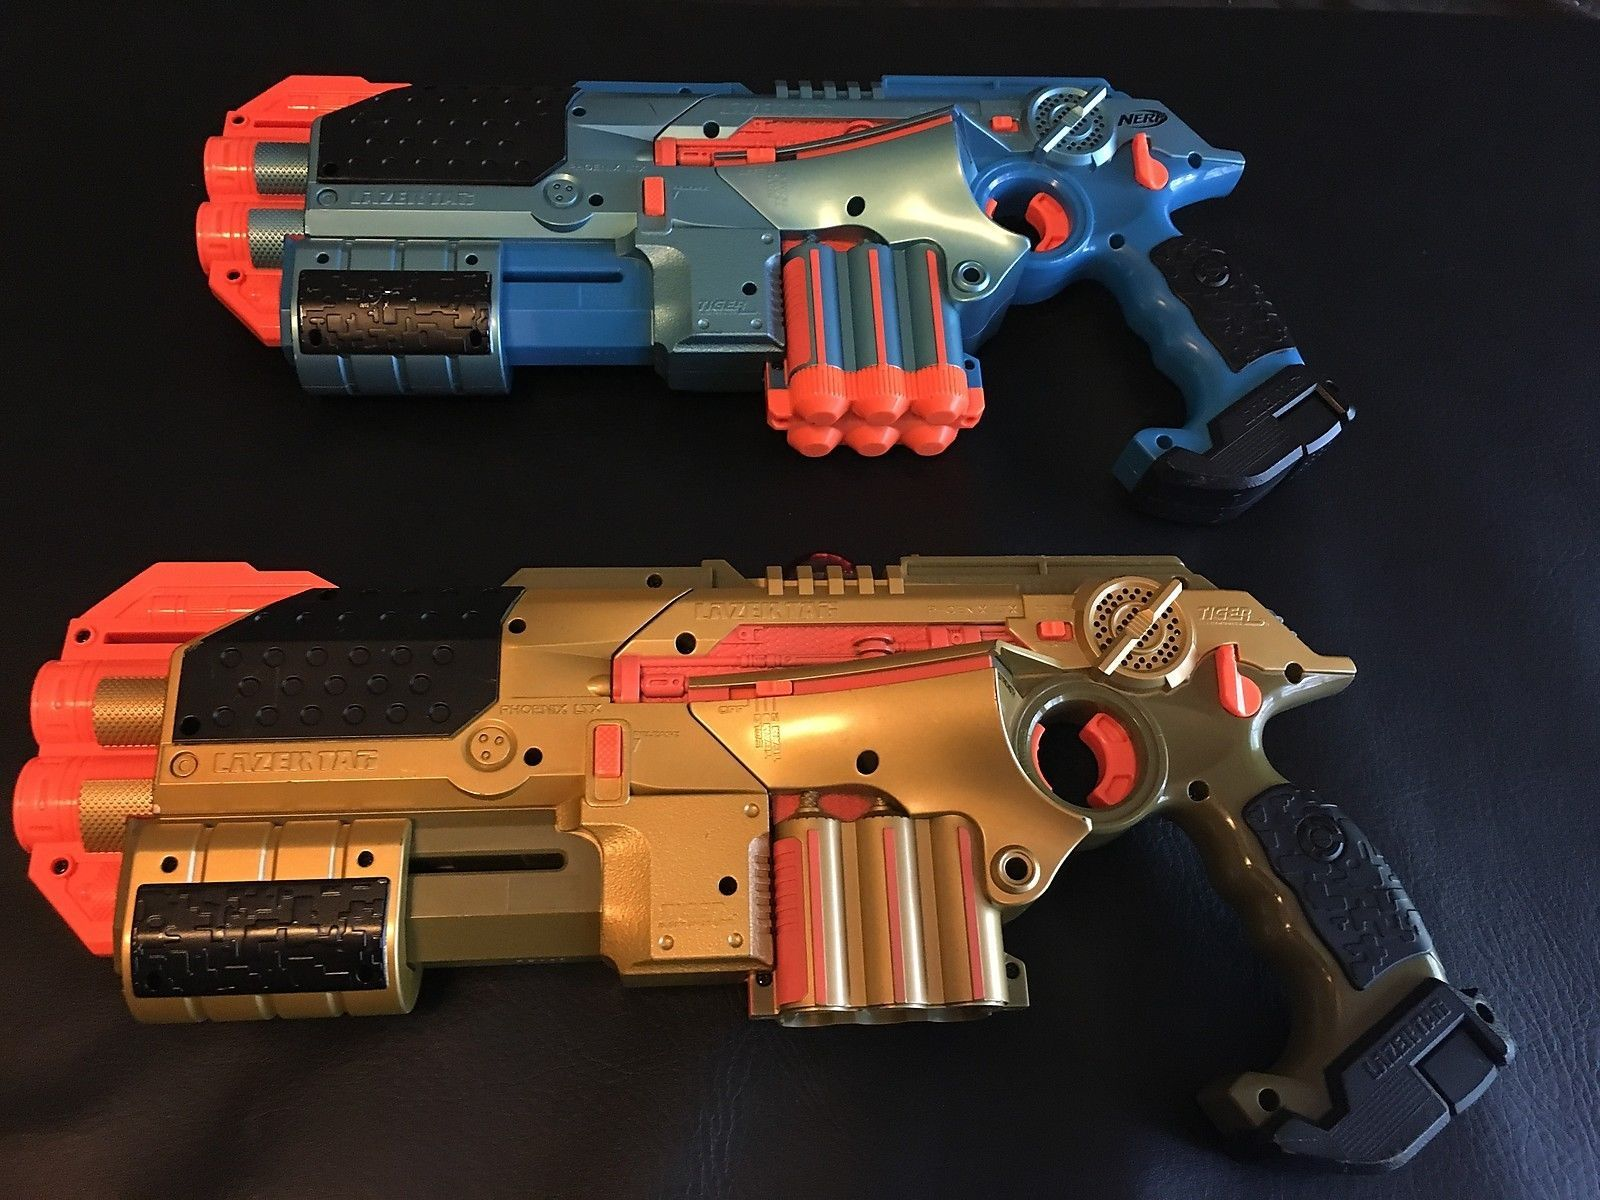 2 NERF TIGER LAZER TAG PHOENIX LTX BLASTER BLUE & GOLD LASER SHOTGUN ATTACHMENTS